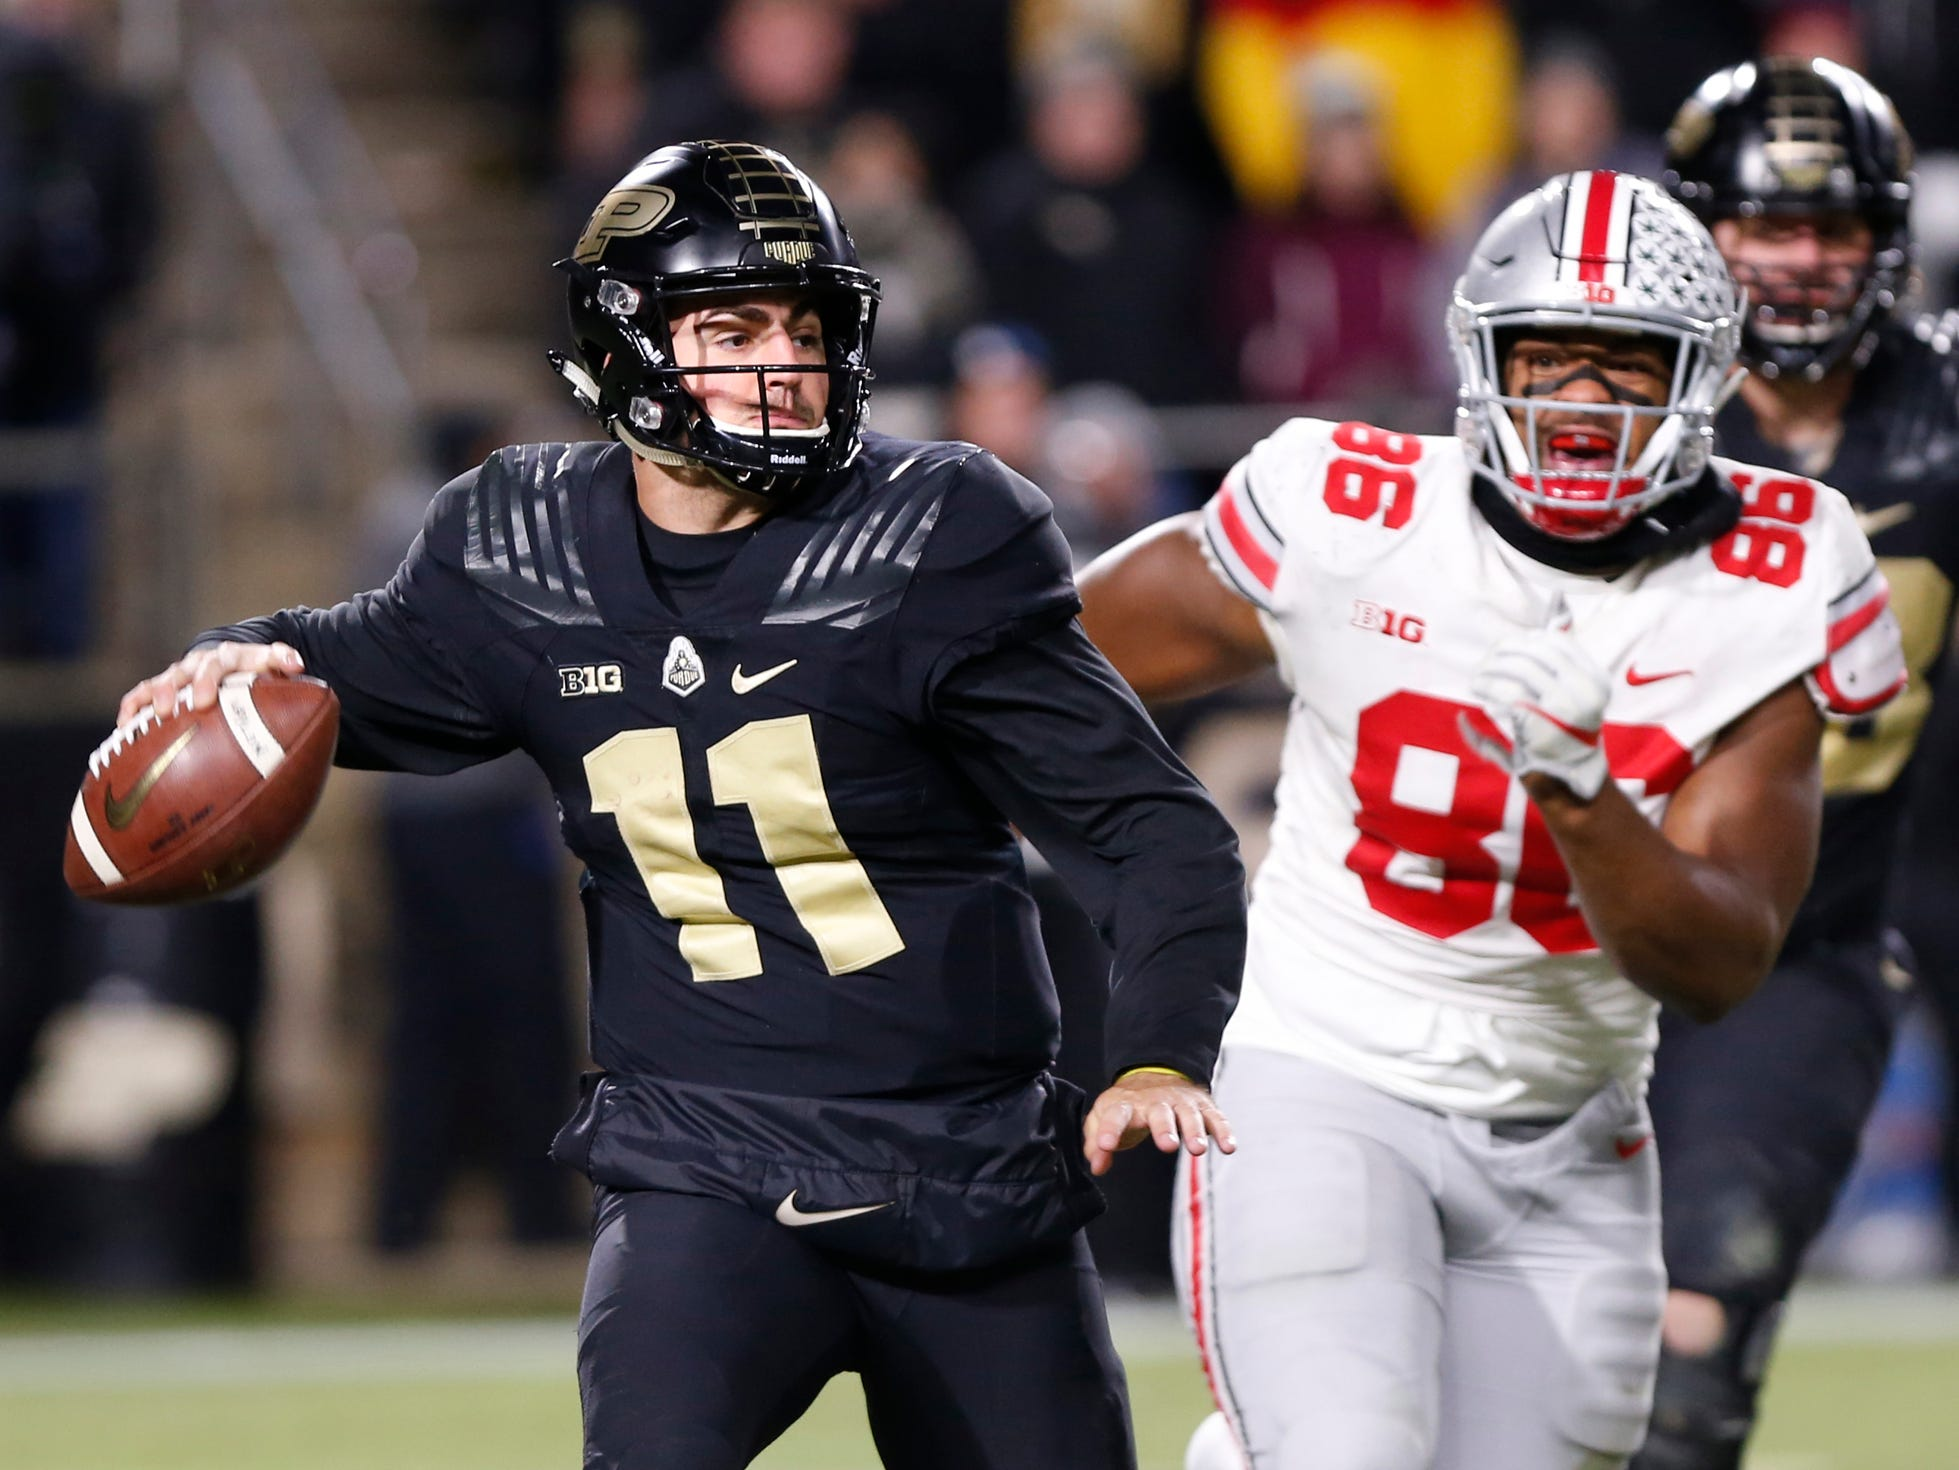 Purdue quarterback David Blough rolls out to pass while chased by Dre'Mont Jones of Ohio State Saturday, October 20, 2018, at Ross-Ade Stadium. Purdue upset the No. 2 ranked Buckeyes 49-20.